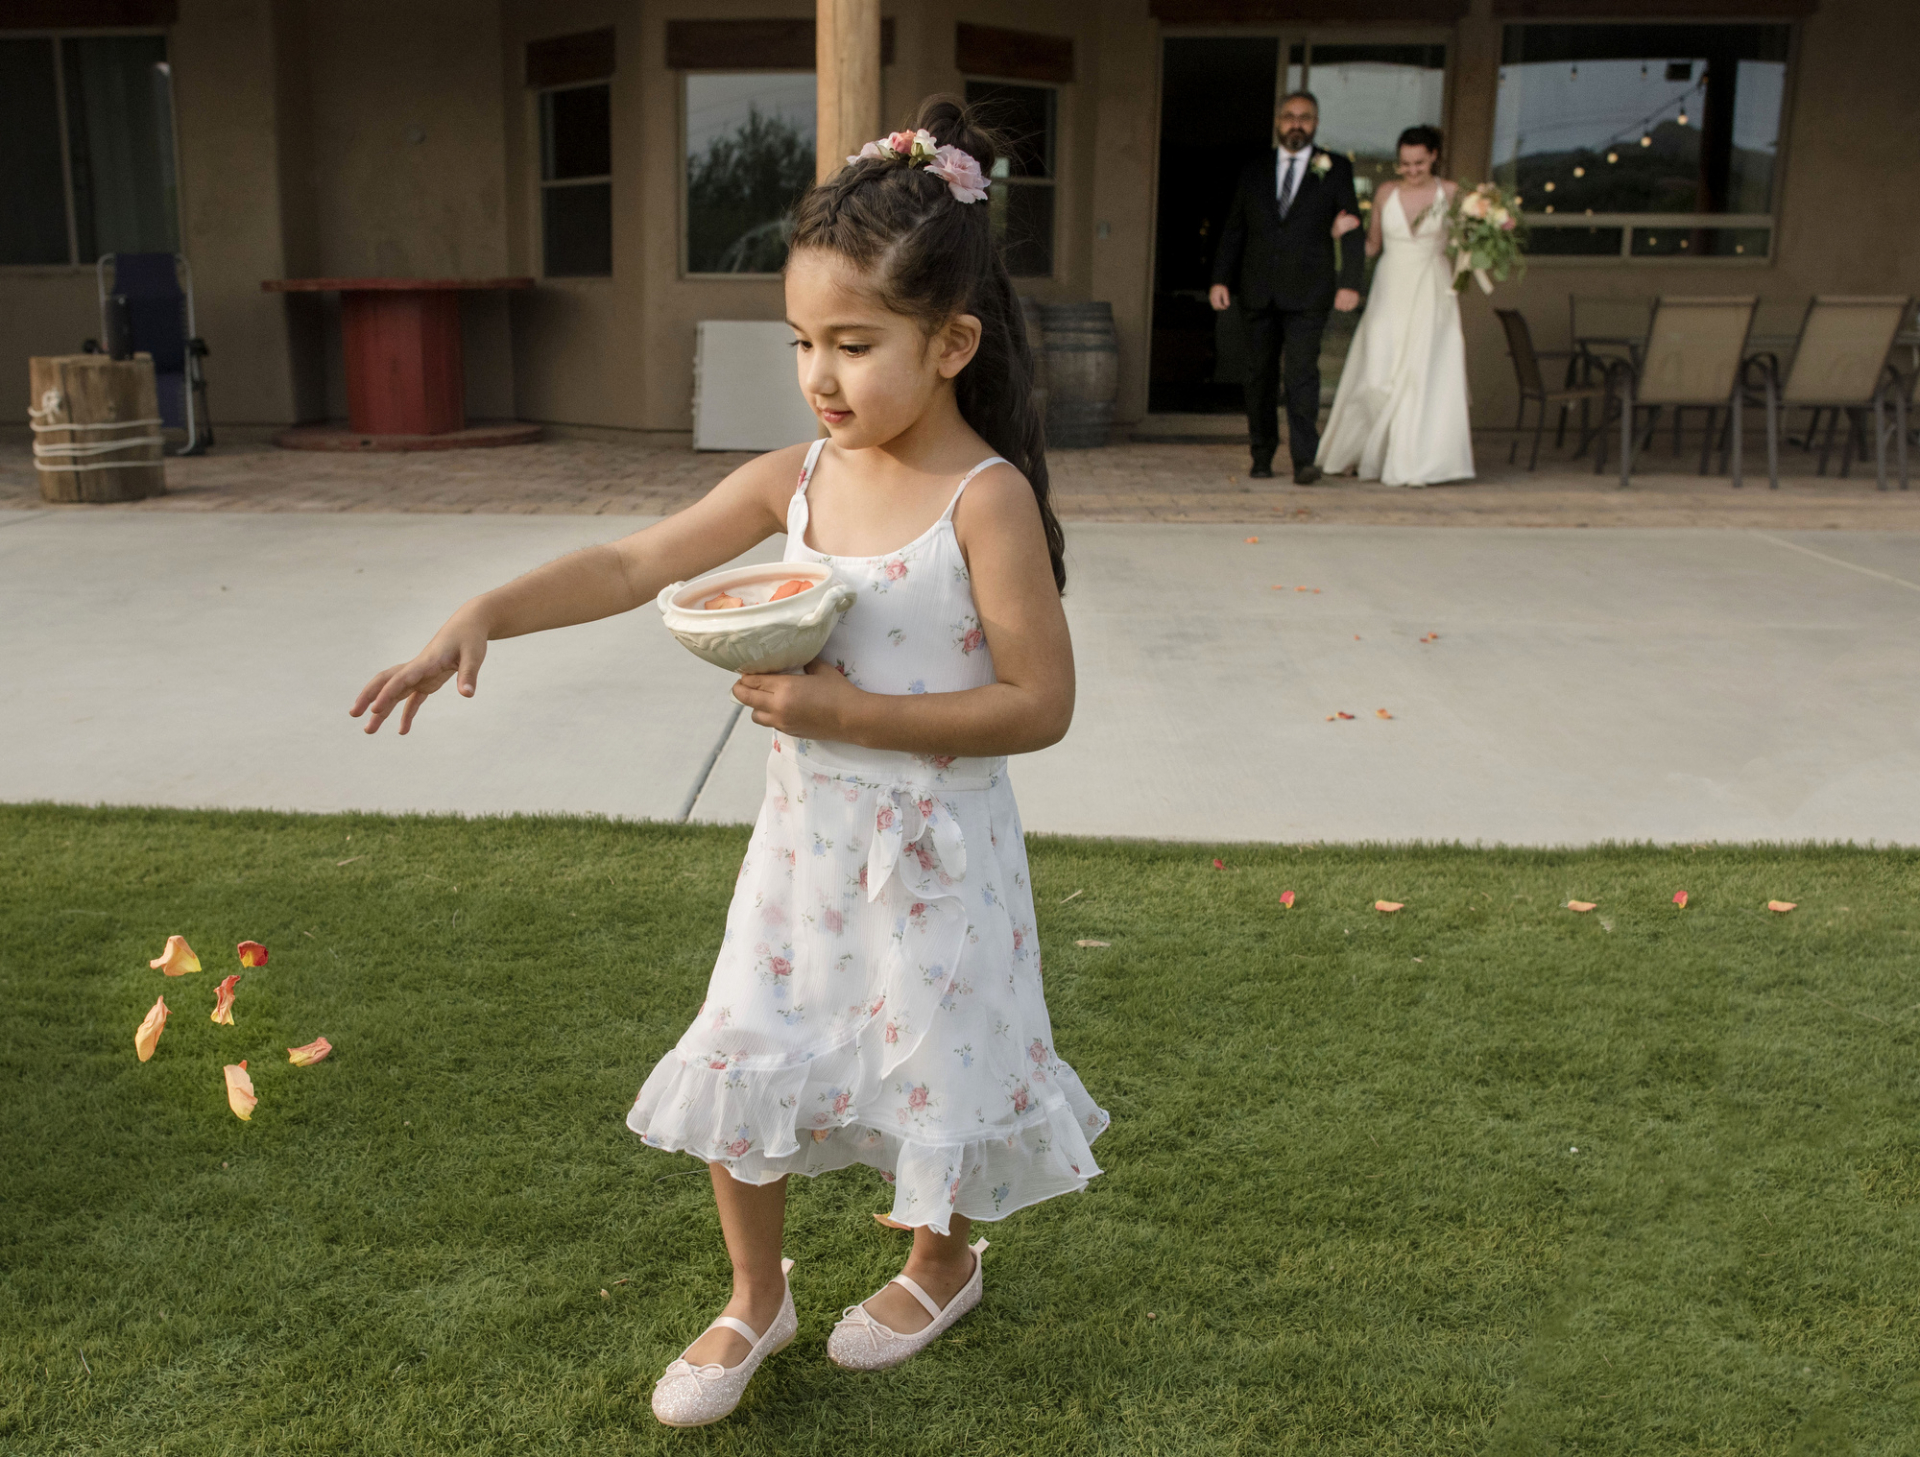 New River, Arizona Elopement Photographer | The flower girl tosses rose petals on the lawn